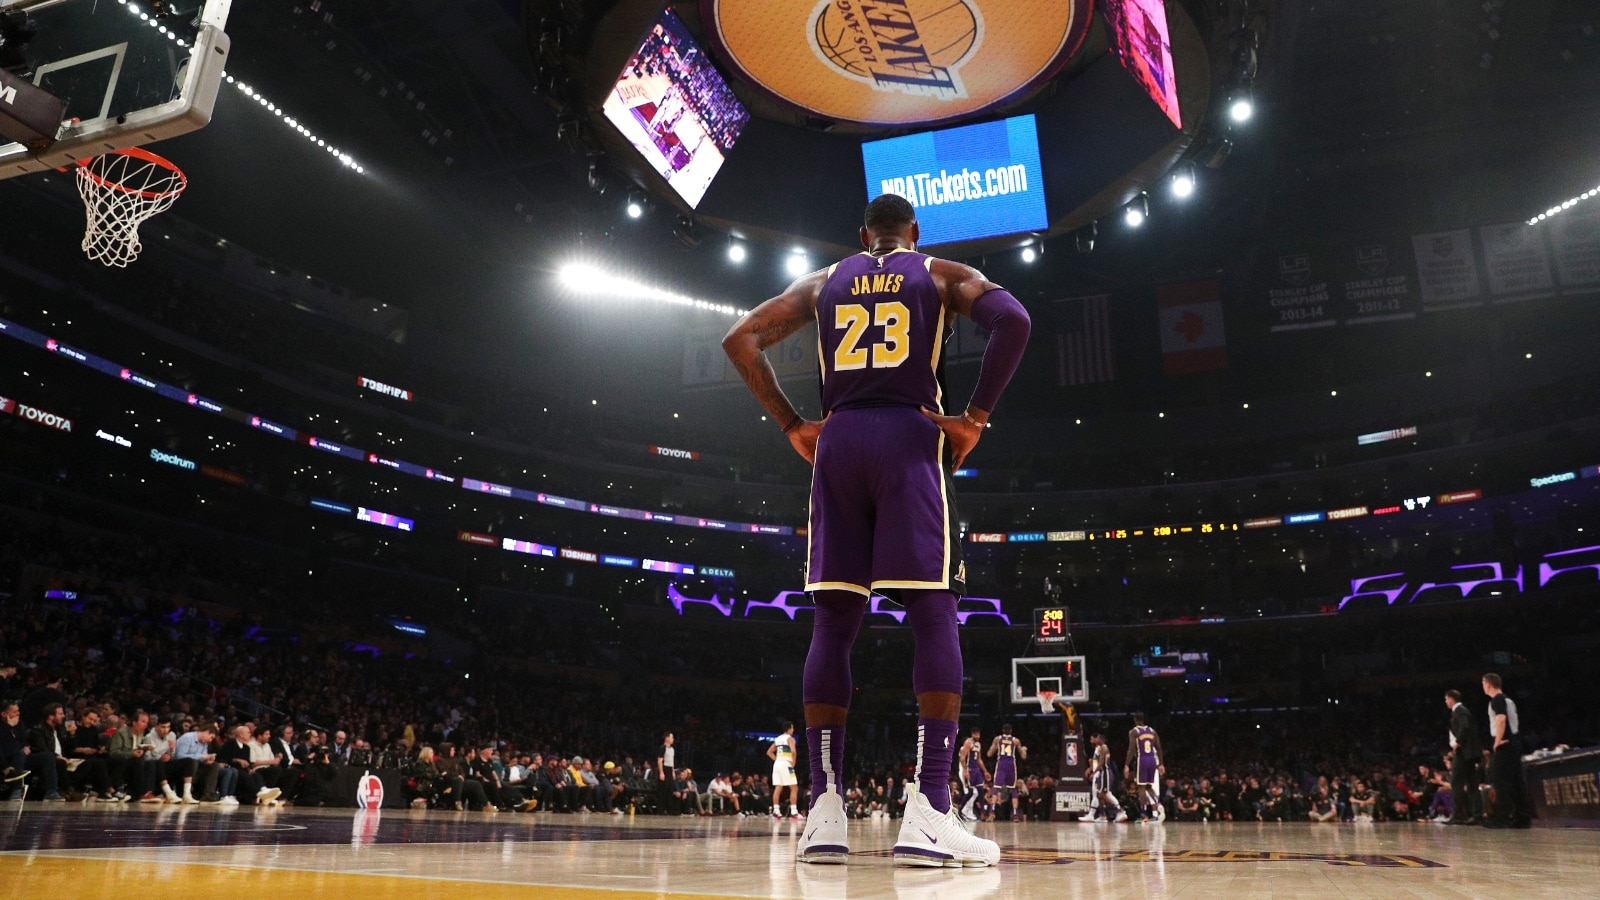 LeBron James at the Staples Center